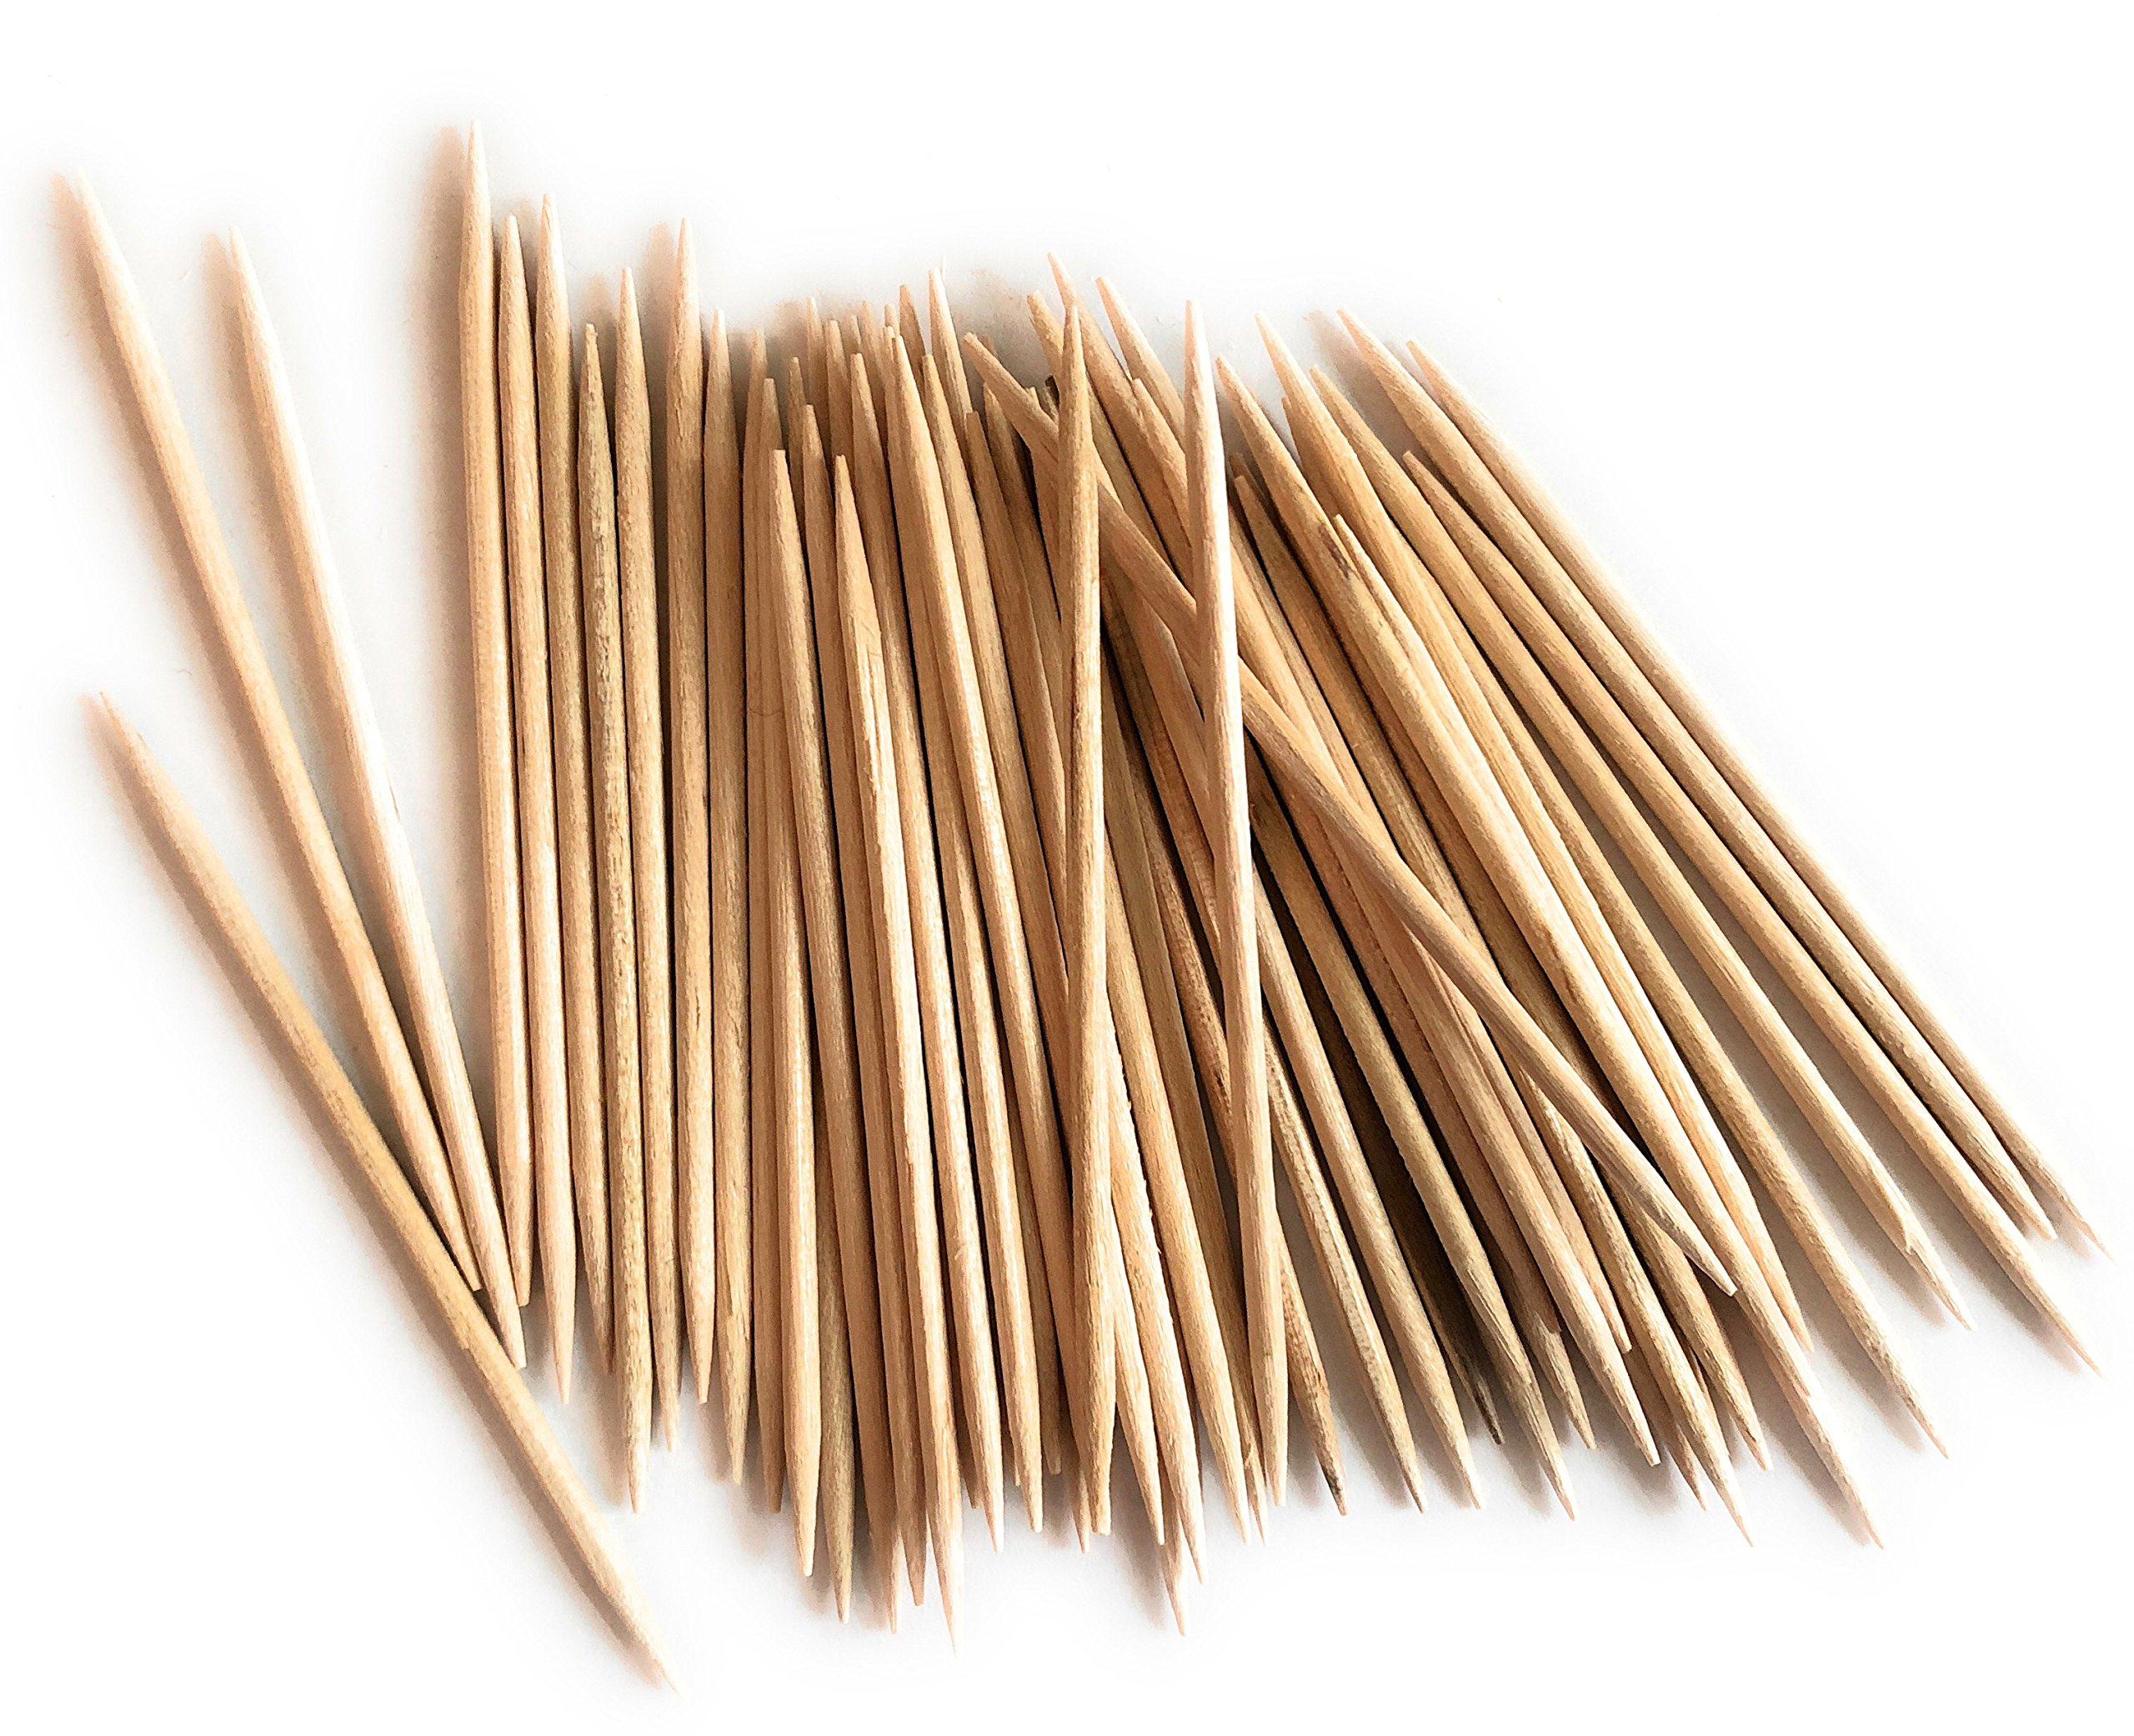 Round Wood Toothpicks, 4 Boxes of 800 Count